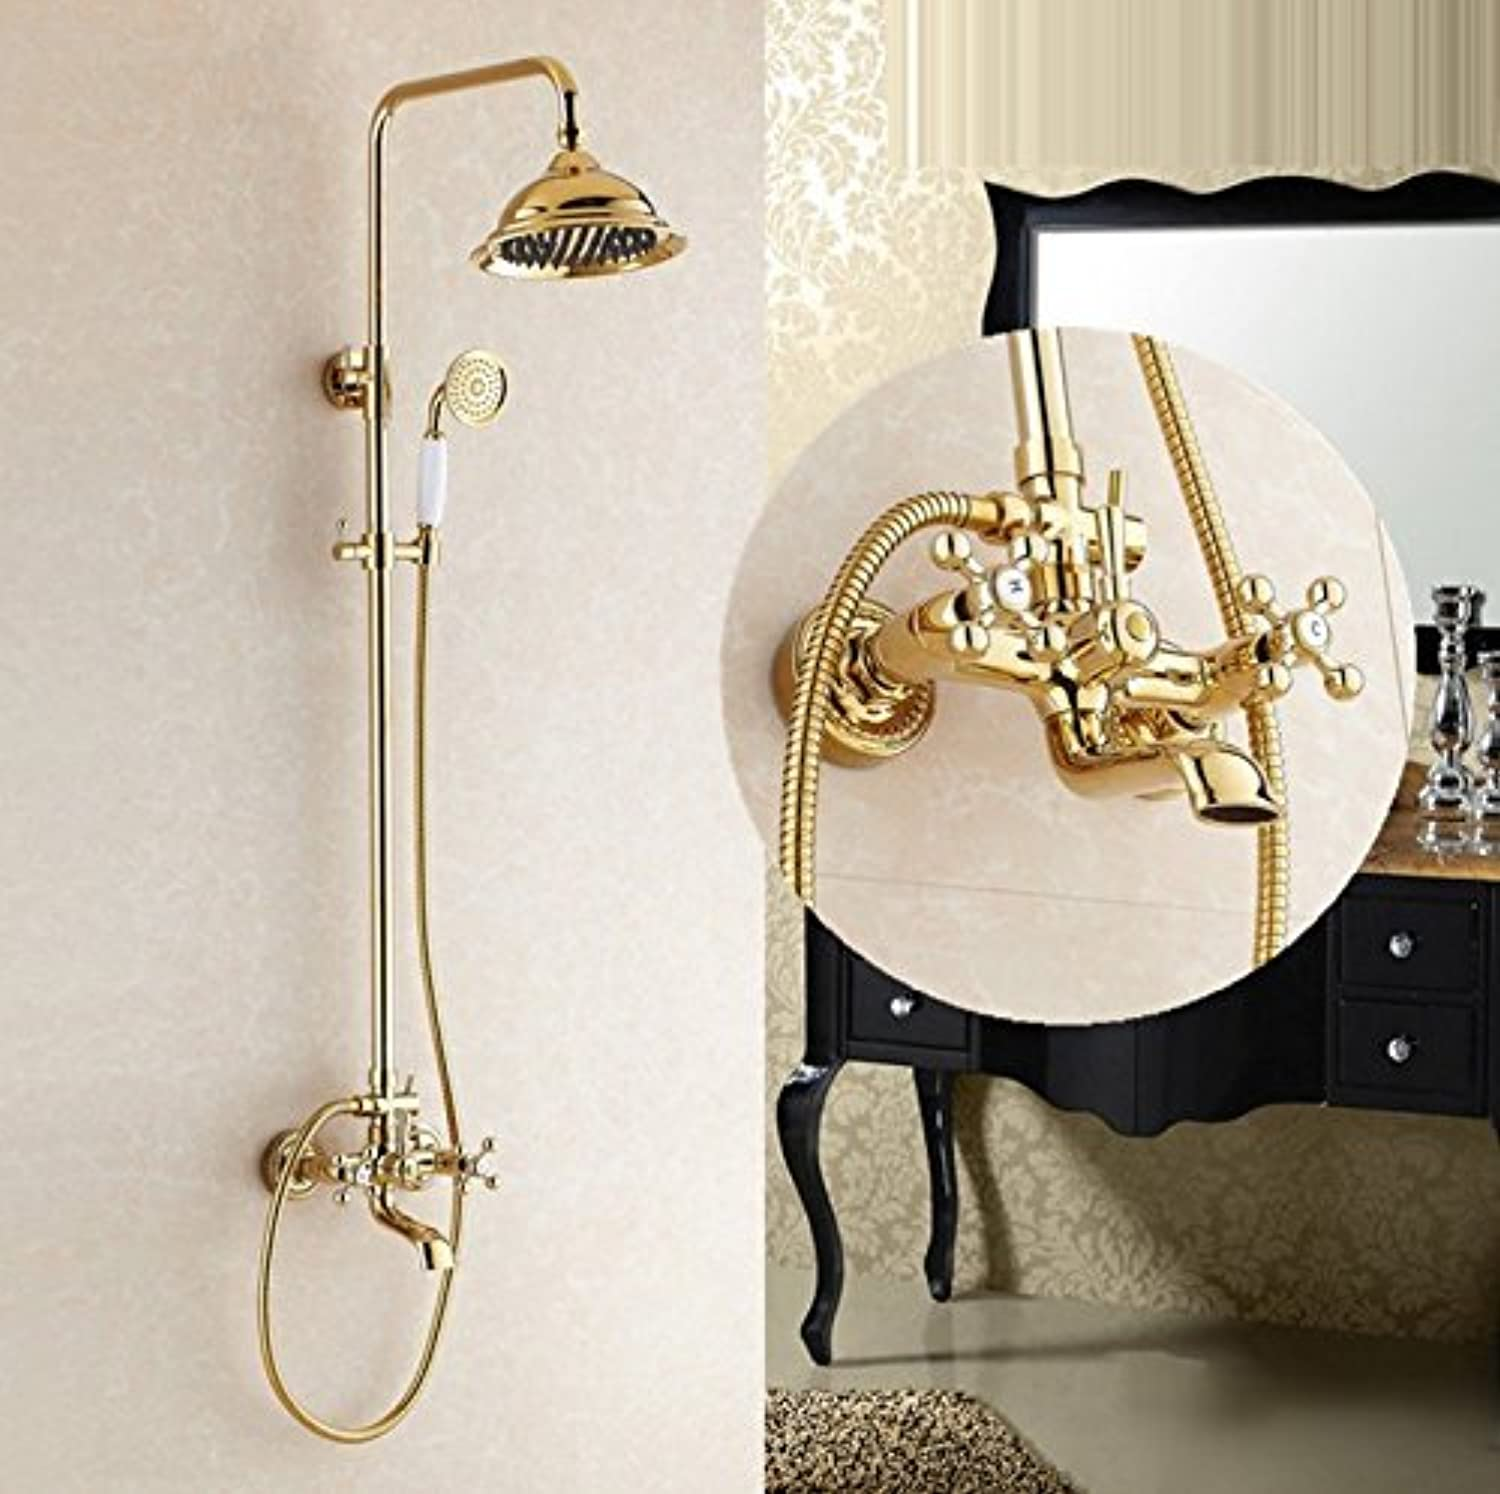 Shower Sprinkler European to Function Hand Shower Bath Tap Thermostatic Hot and Cold in Full Copper